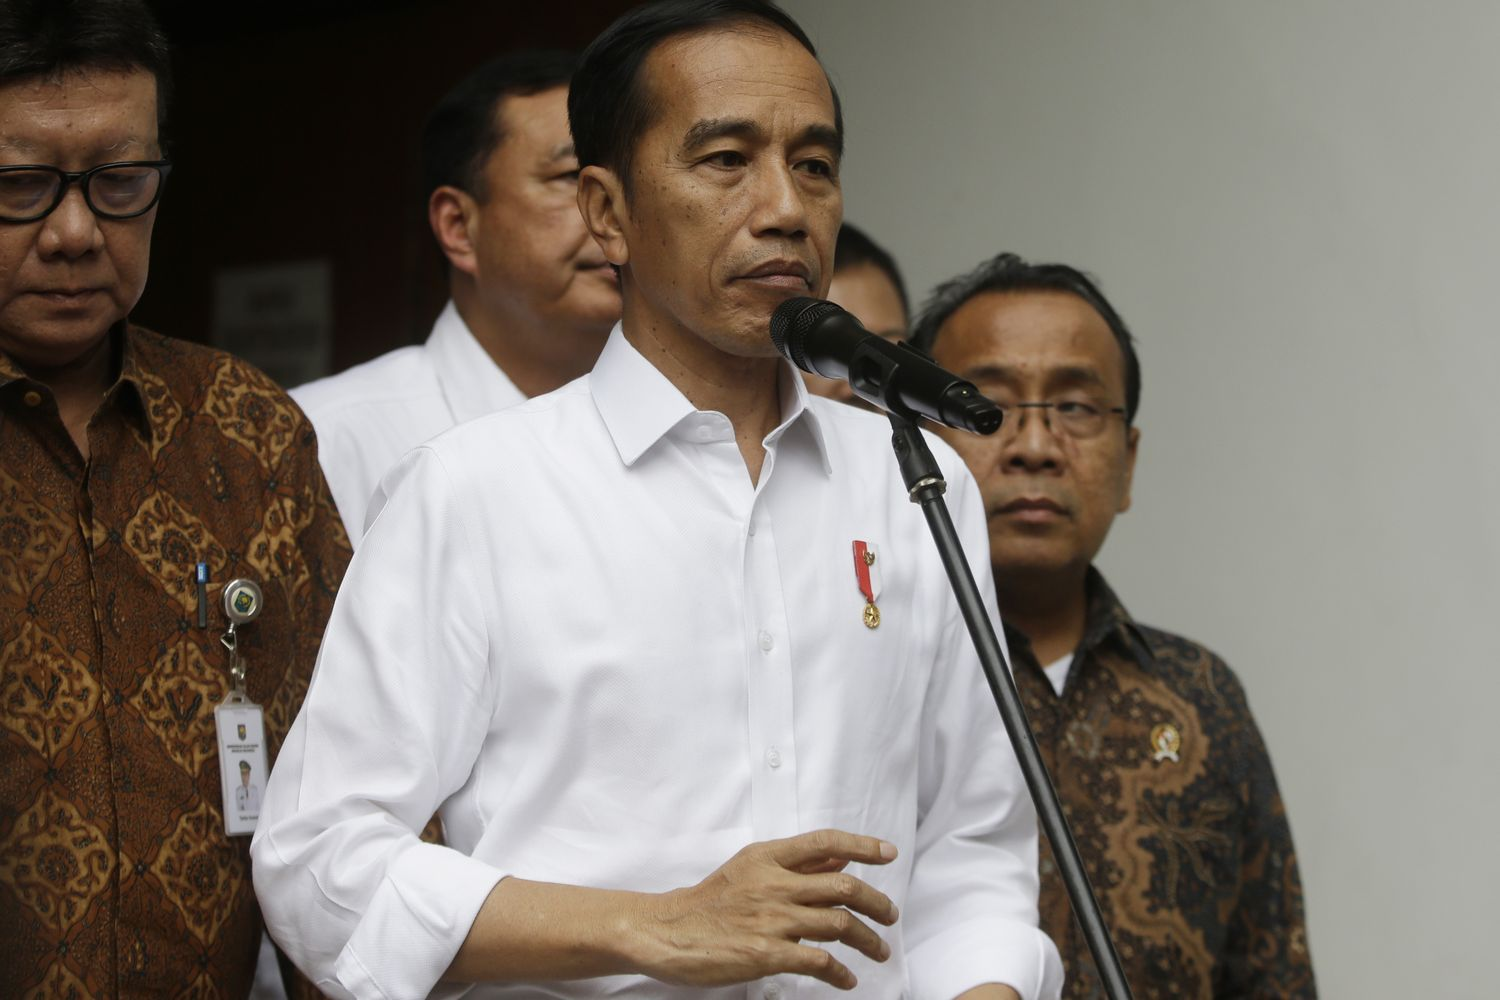 Knife-wielding man wounds Indonesia's security minister